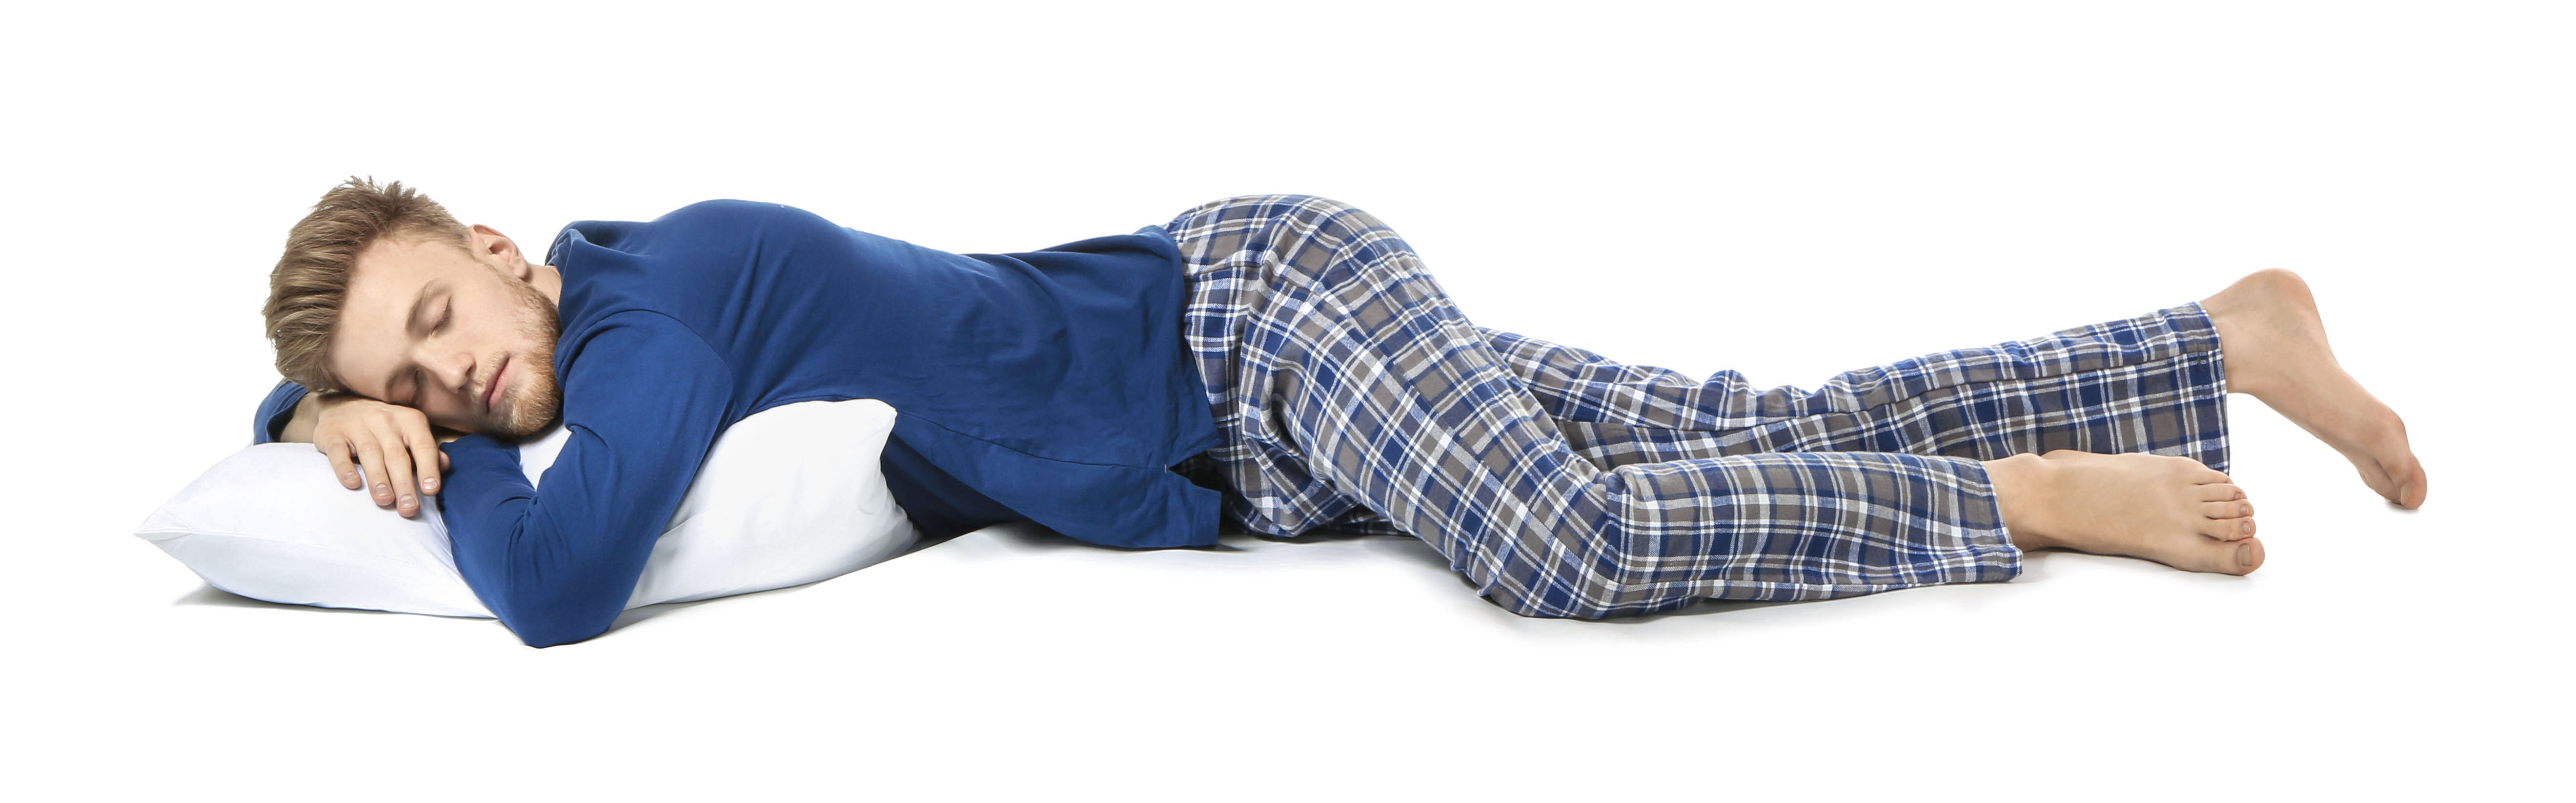 Image of a young man in a blut t-shirt and blue/gray plaid pajama pants lying asleep on a white pillow. Background of image is white.